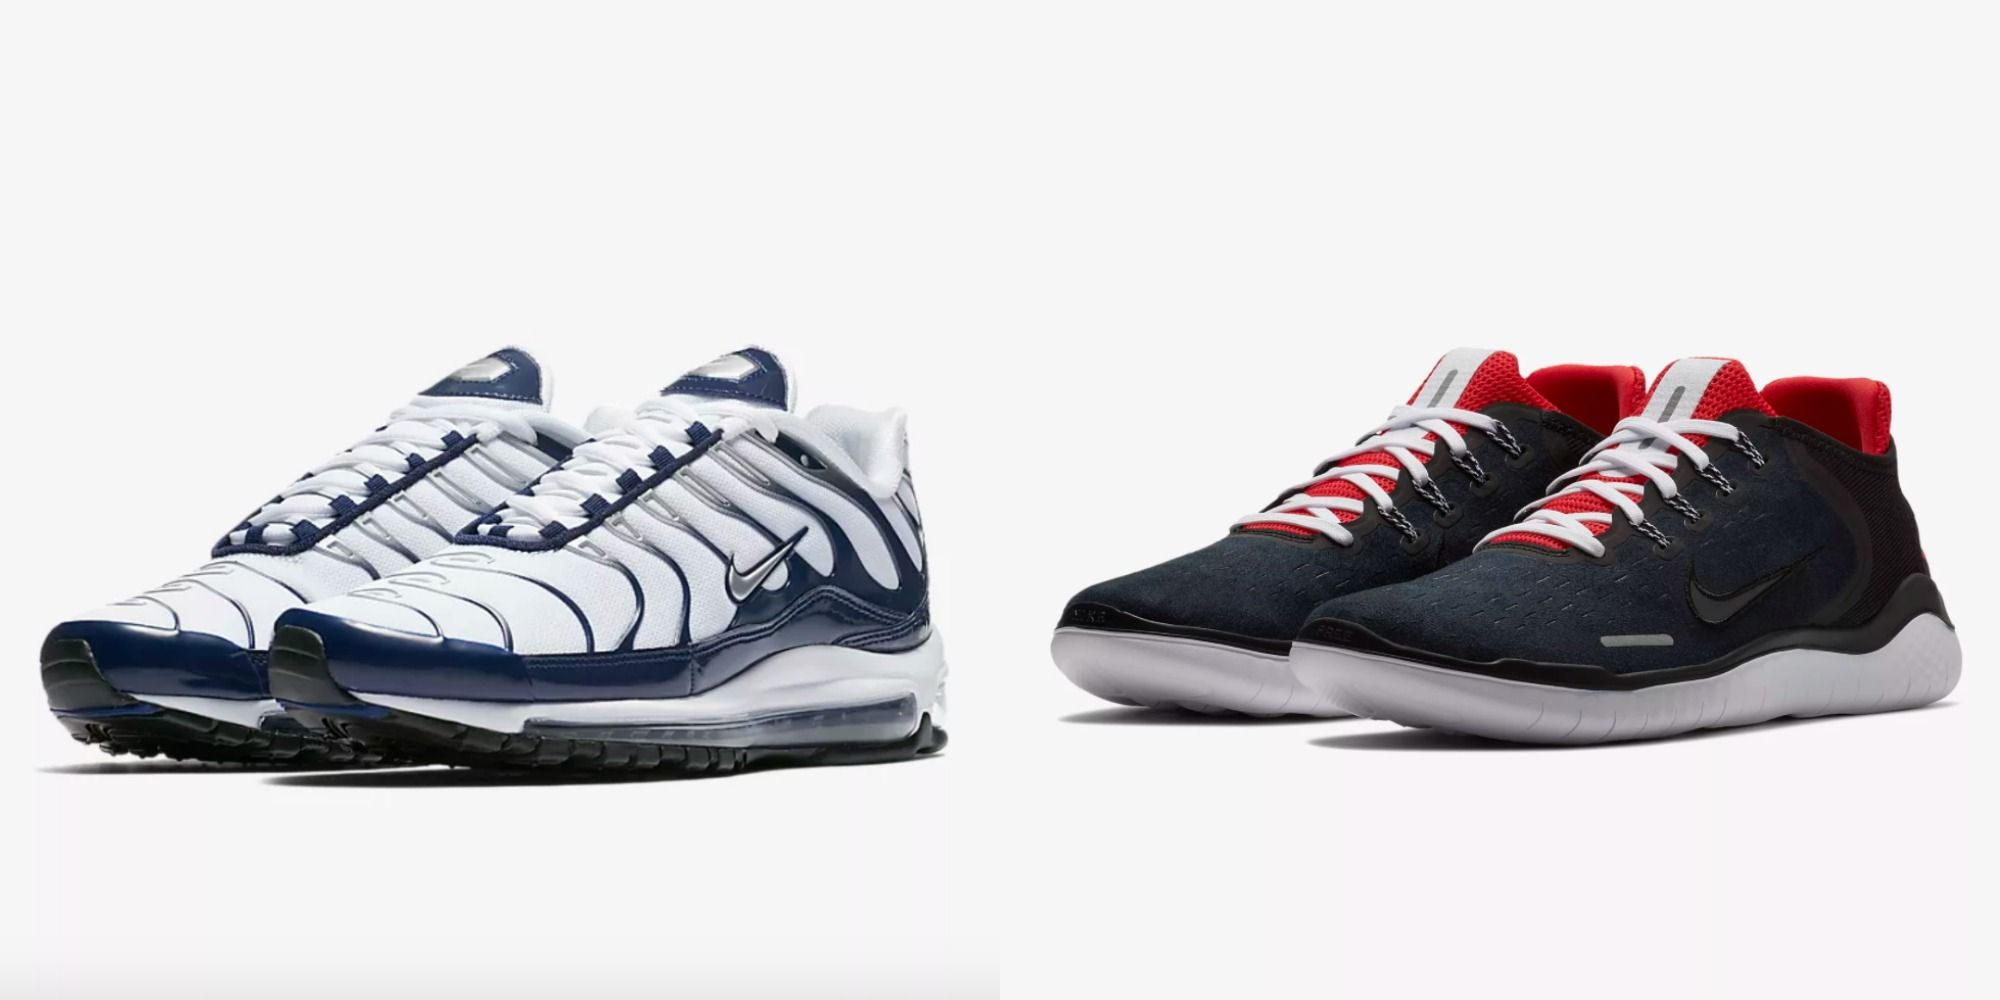 New Nike Sneakers for Men Are On Sale Right Now